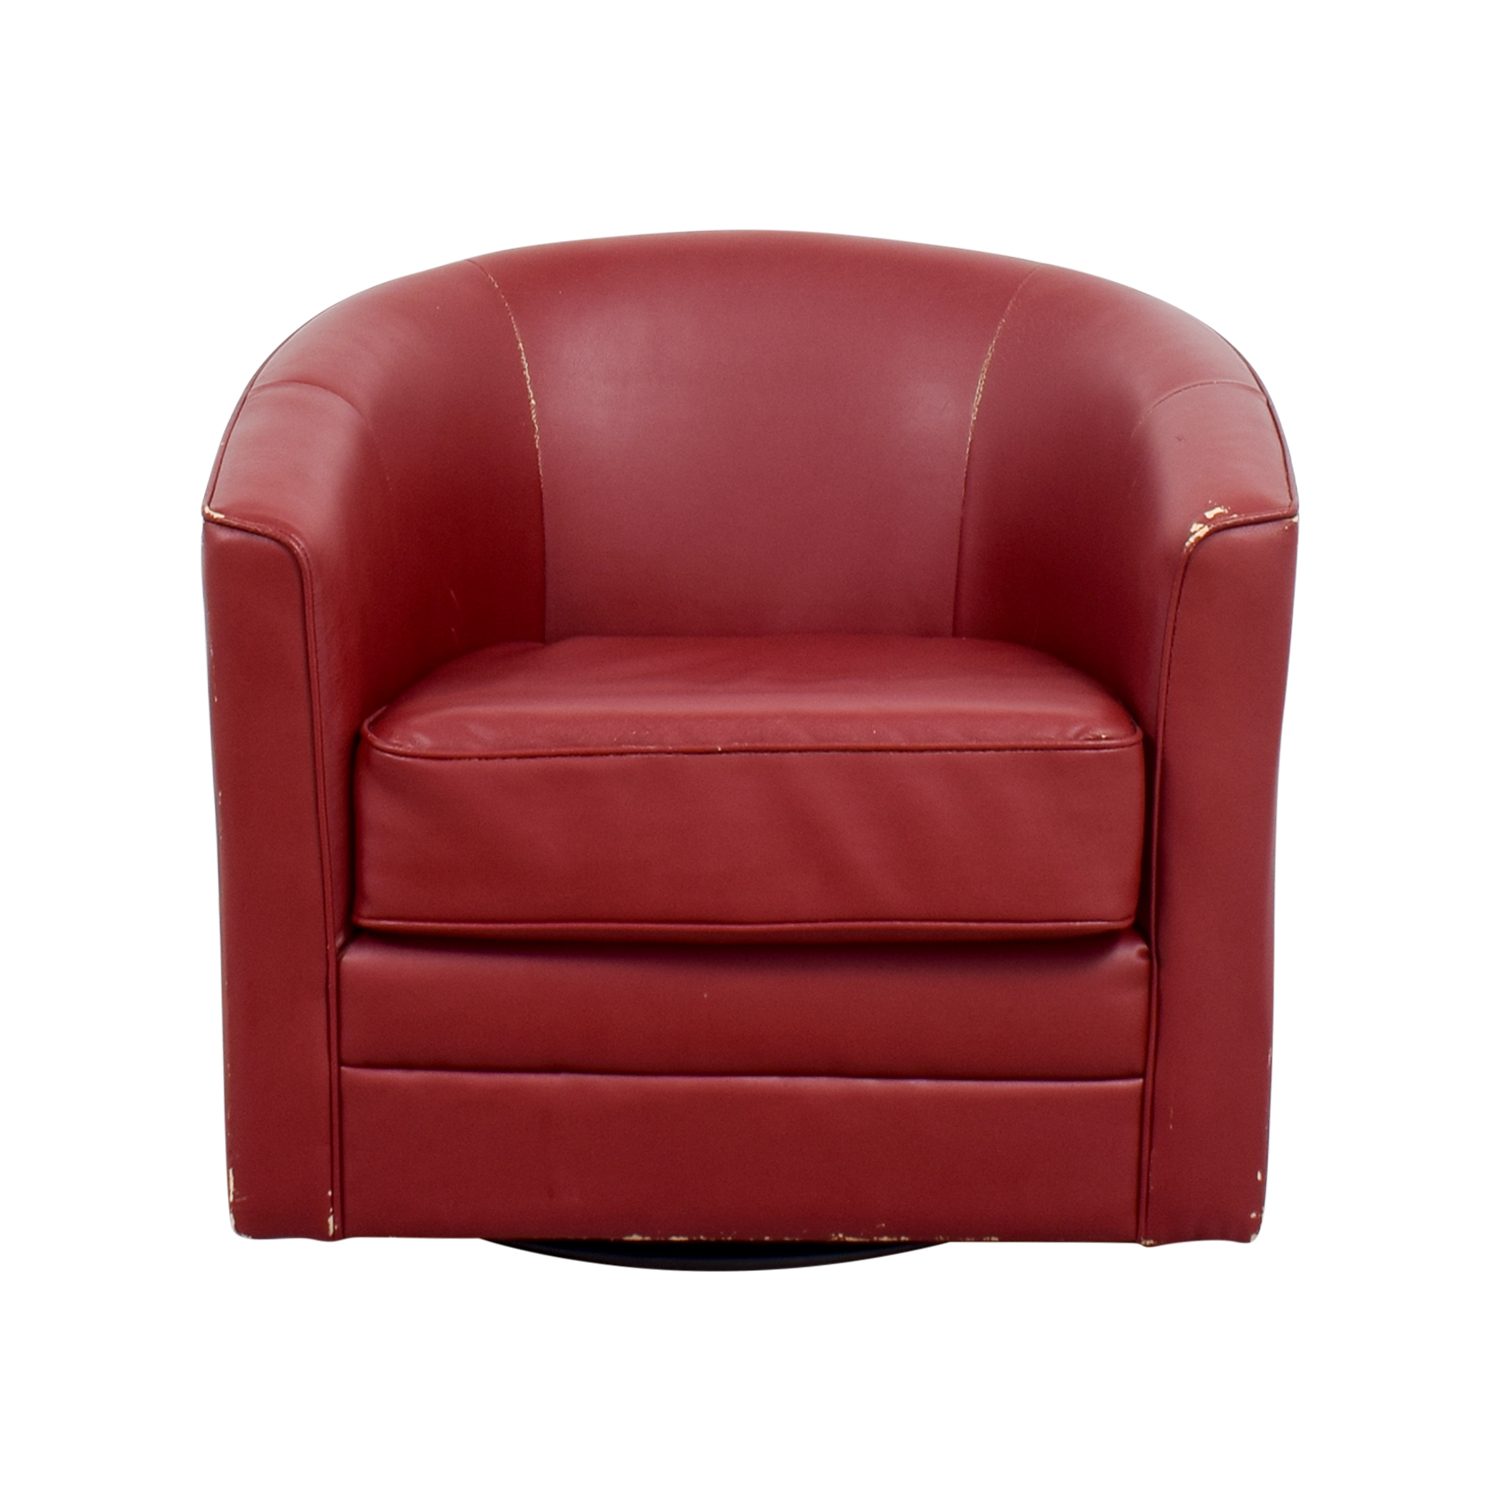 Discount Leather Chairs 90 Off Bob S Discount Furniture Bob S Furniture Red Leather Chair Chairs